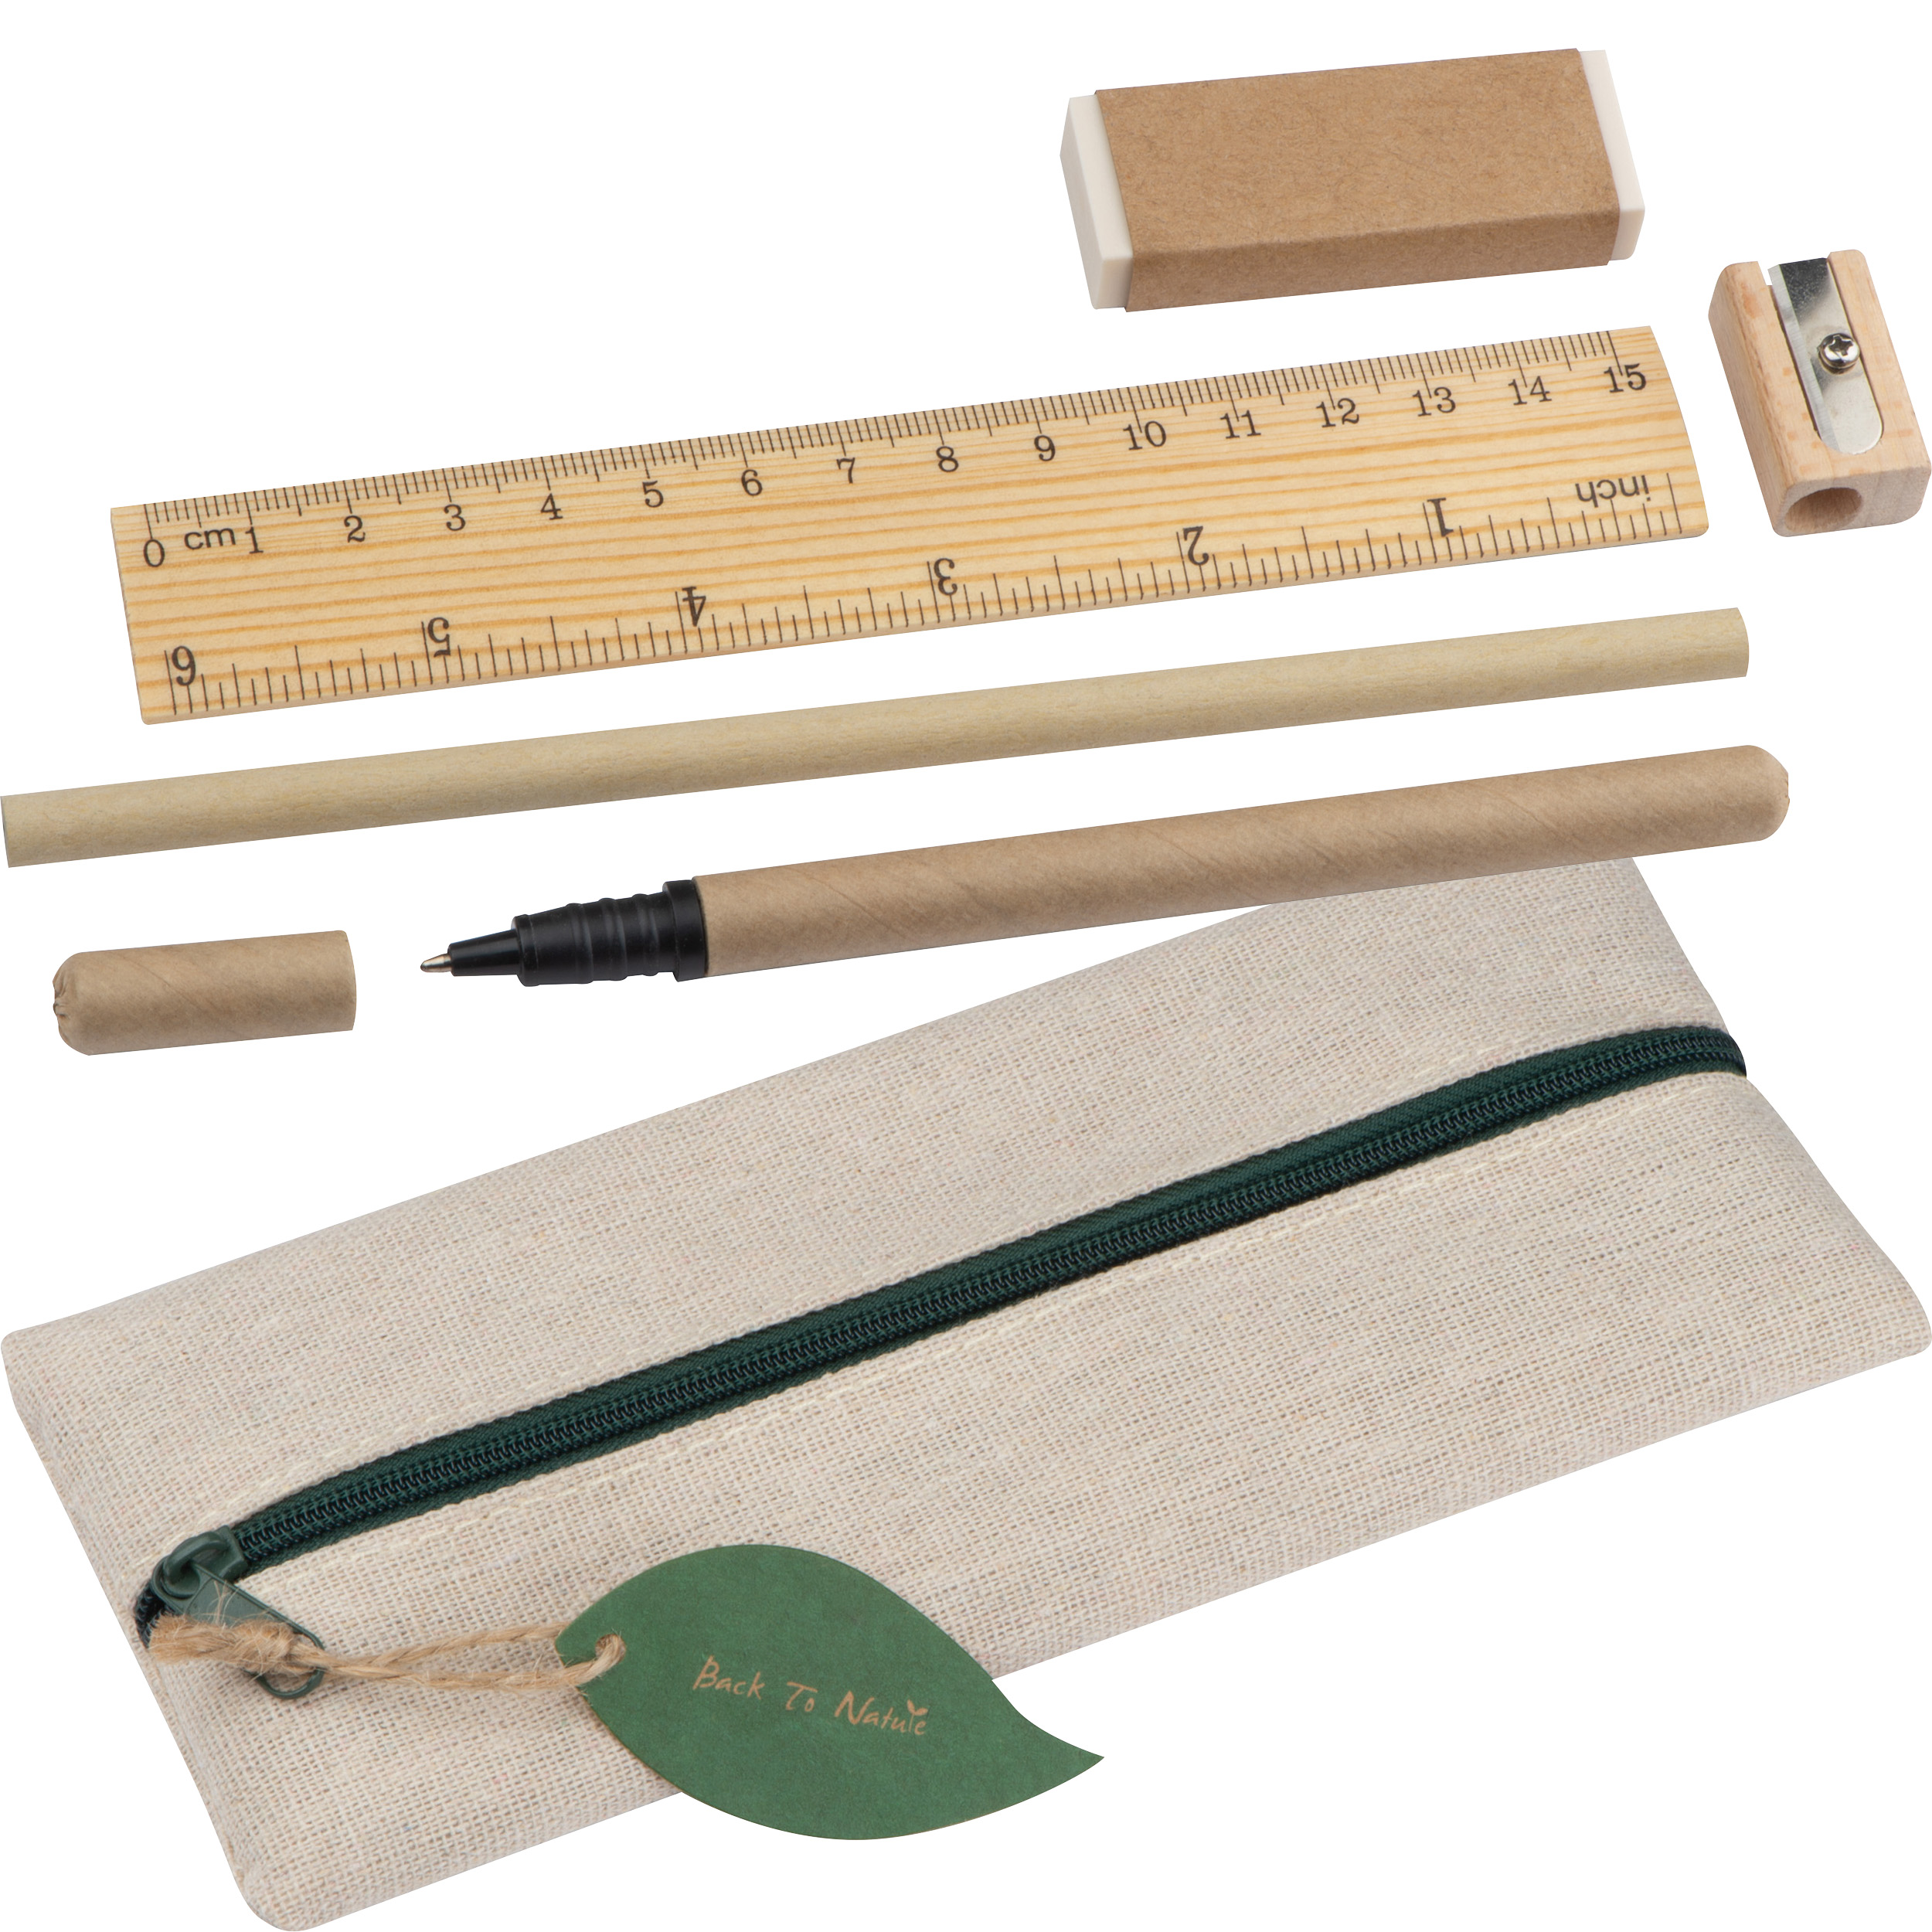 Writing set with ruler, eraser, sharpener, pencil and rollerball